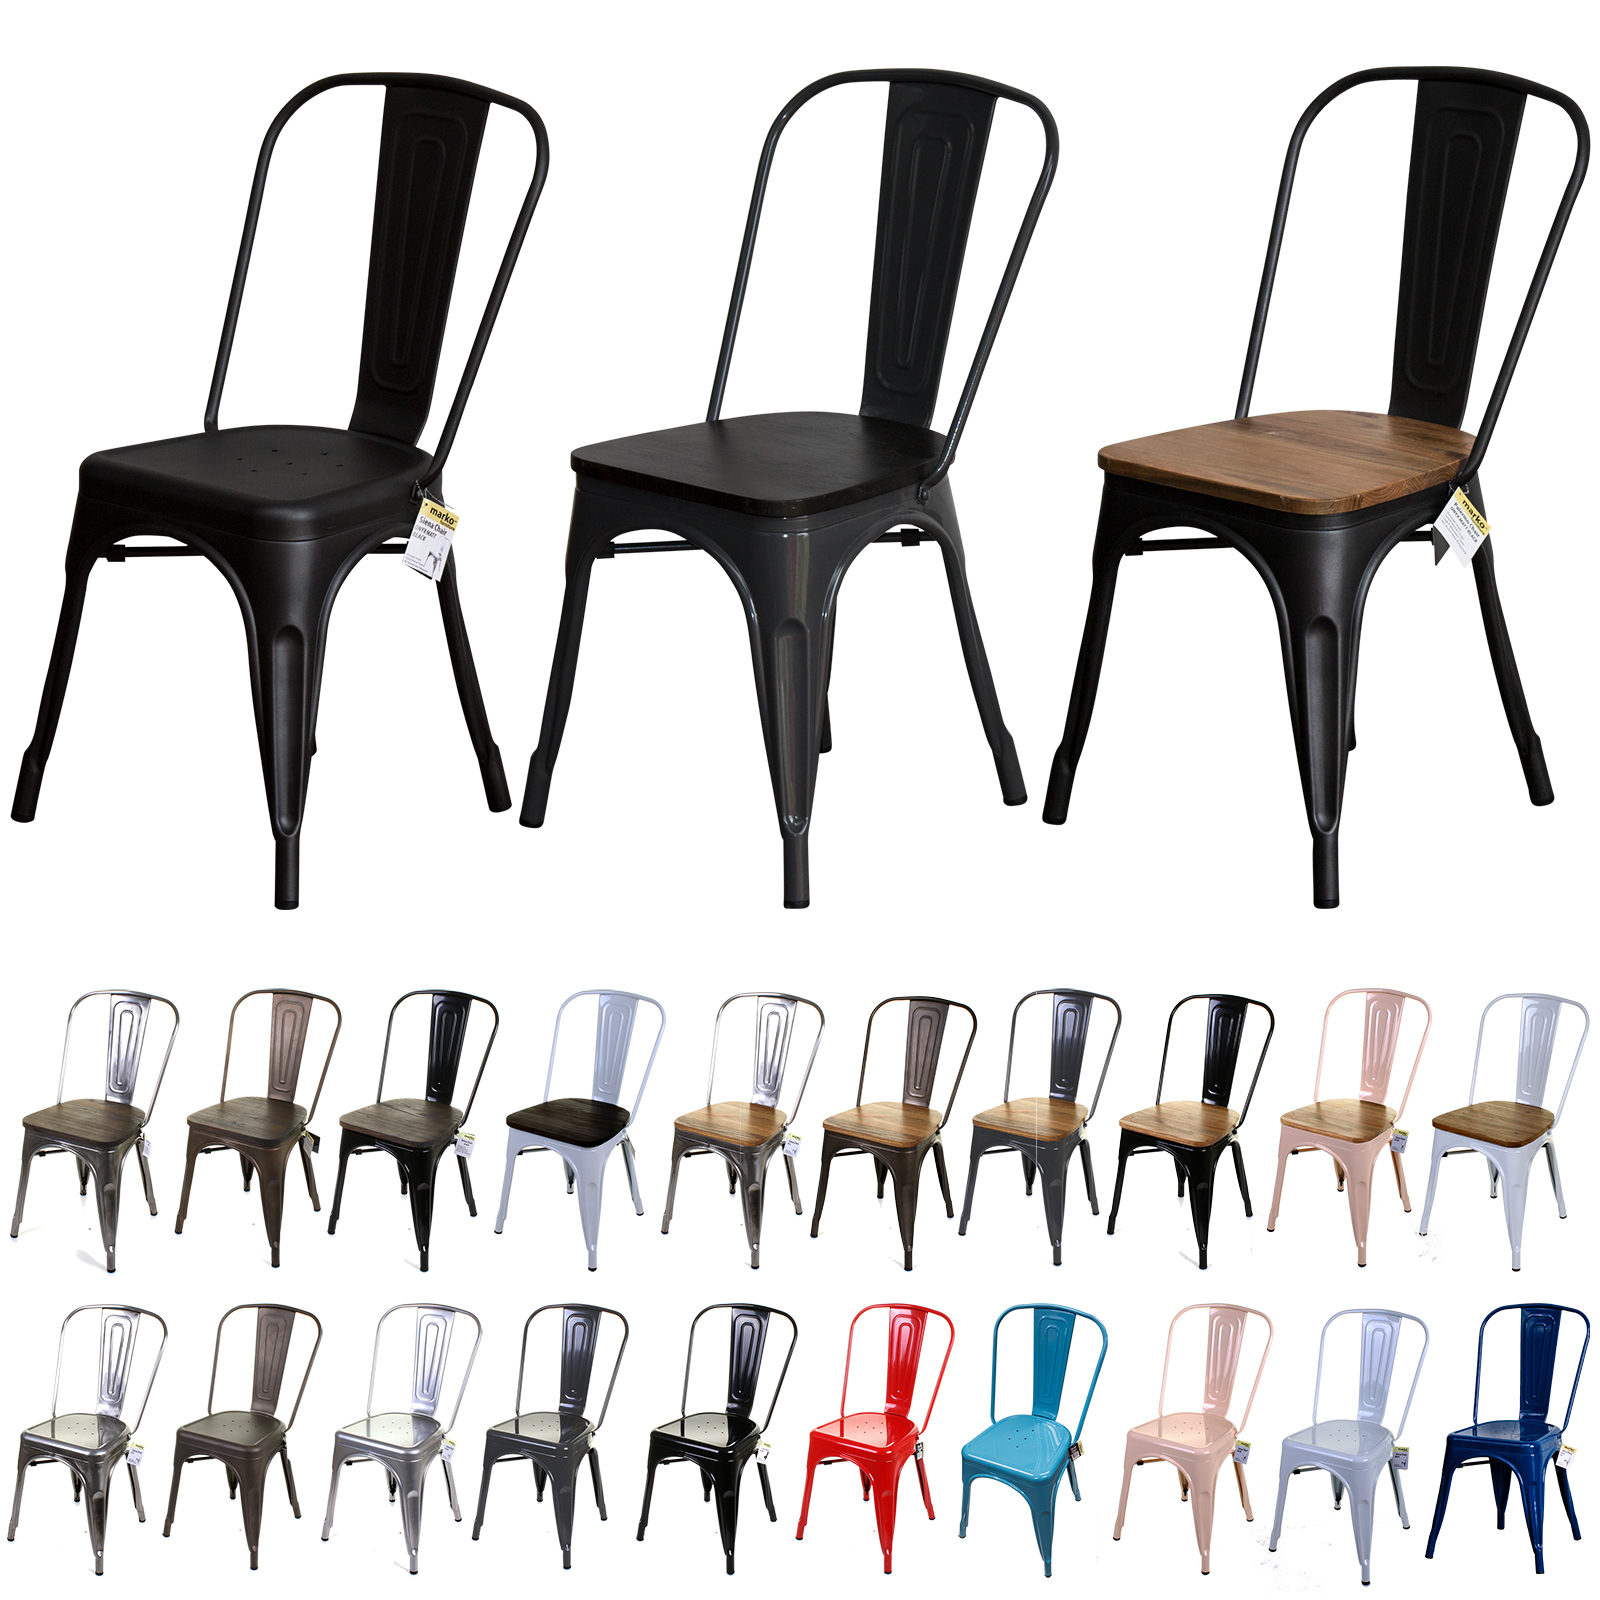 Details about TOLIX STYLE VINTAGE METAL DINING BISTRO CHAIRS GARDEN KITCHEN INDUSTRIAL CAFE